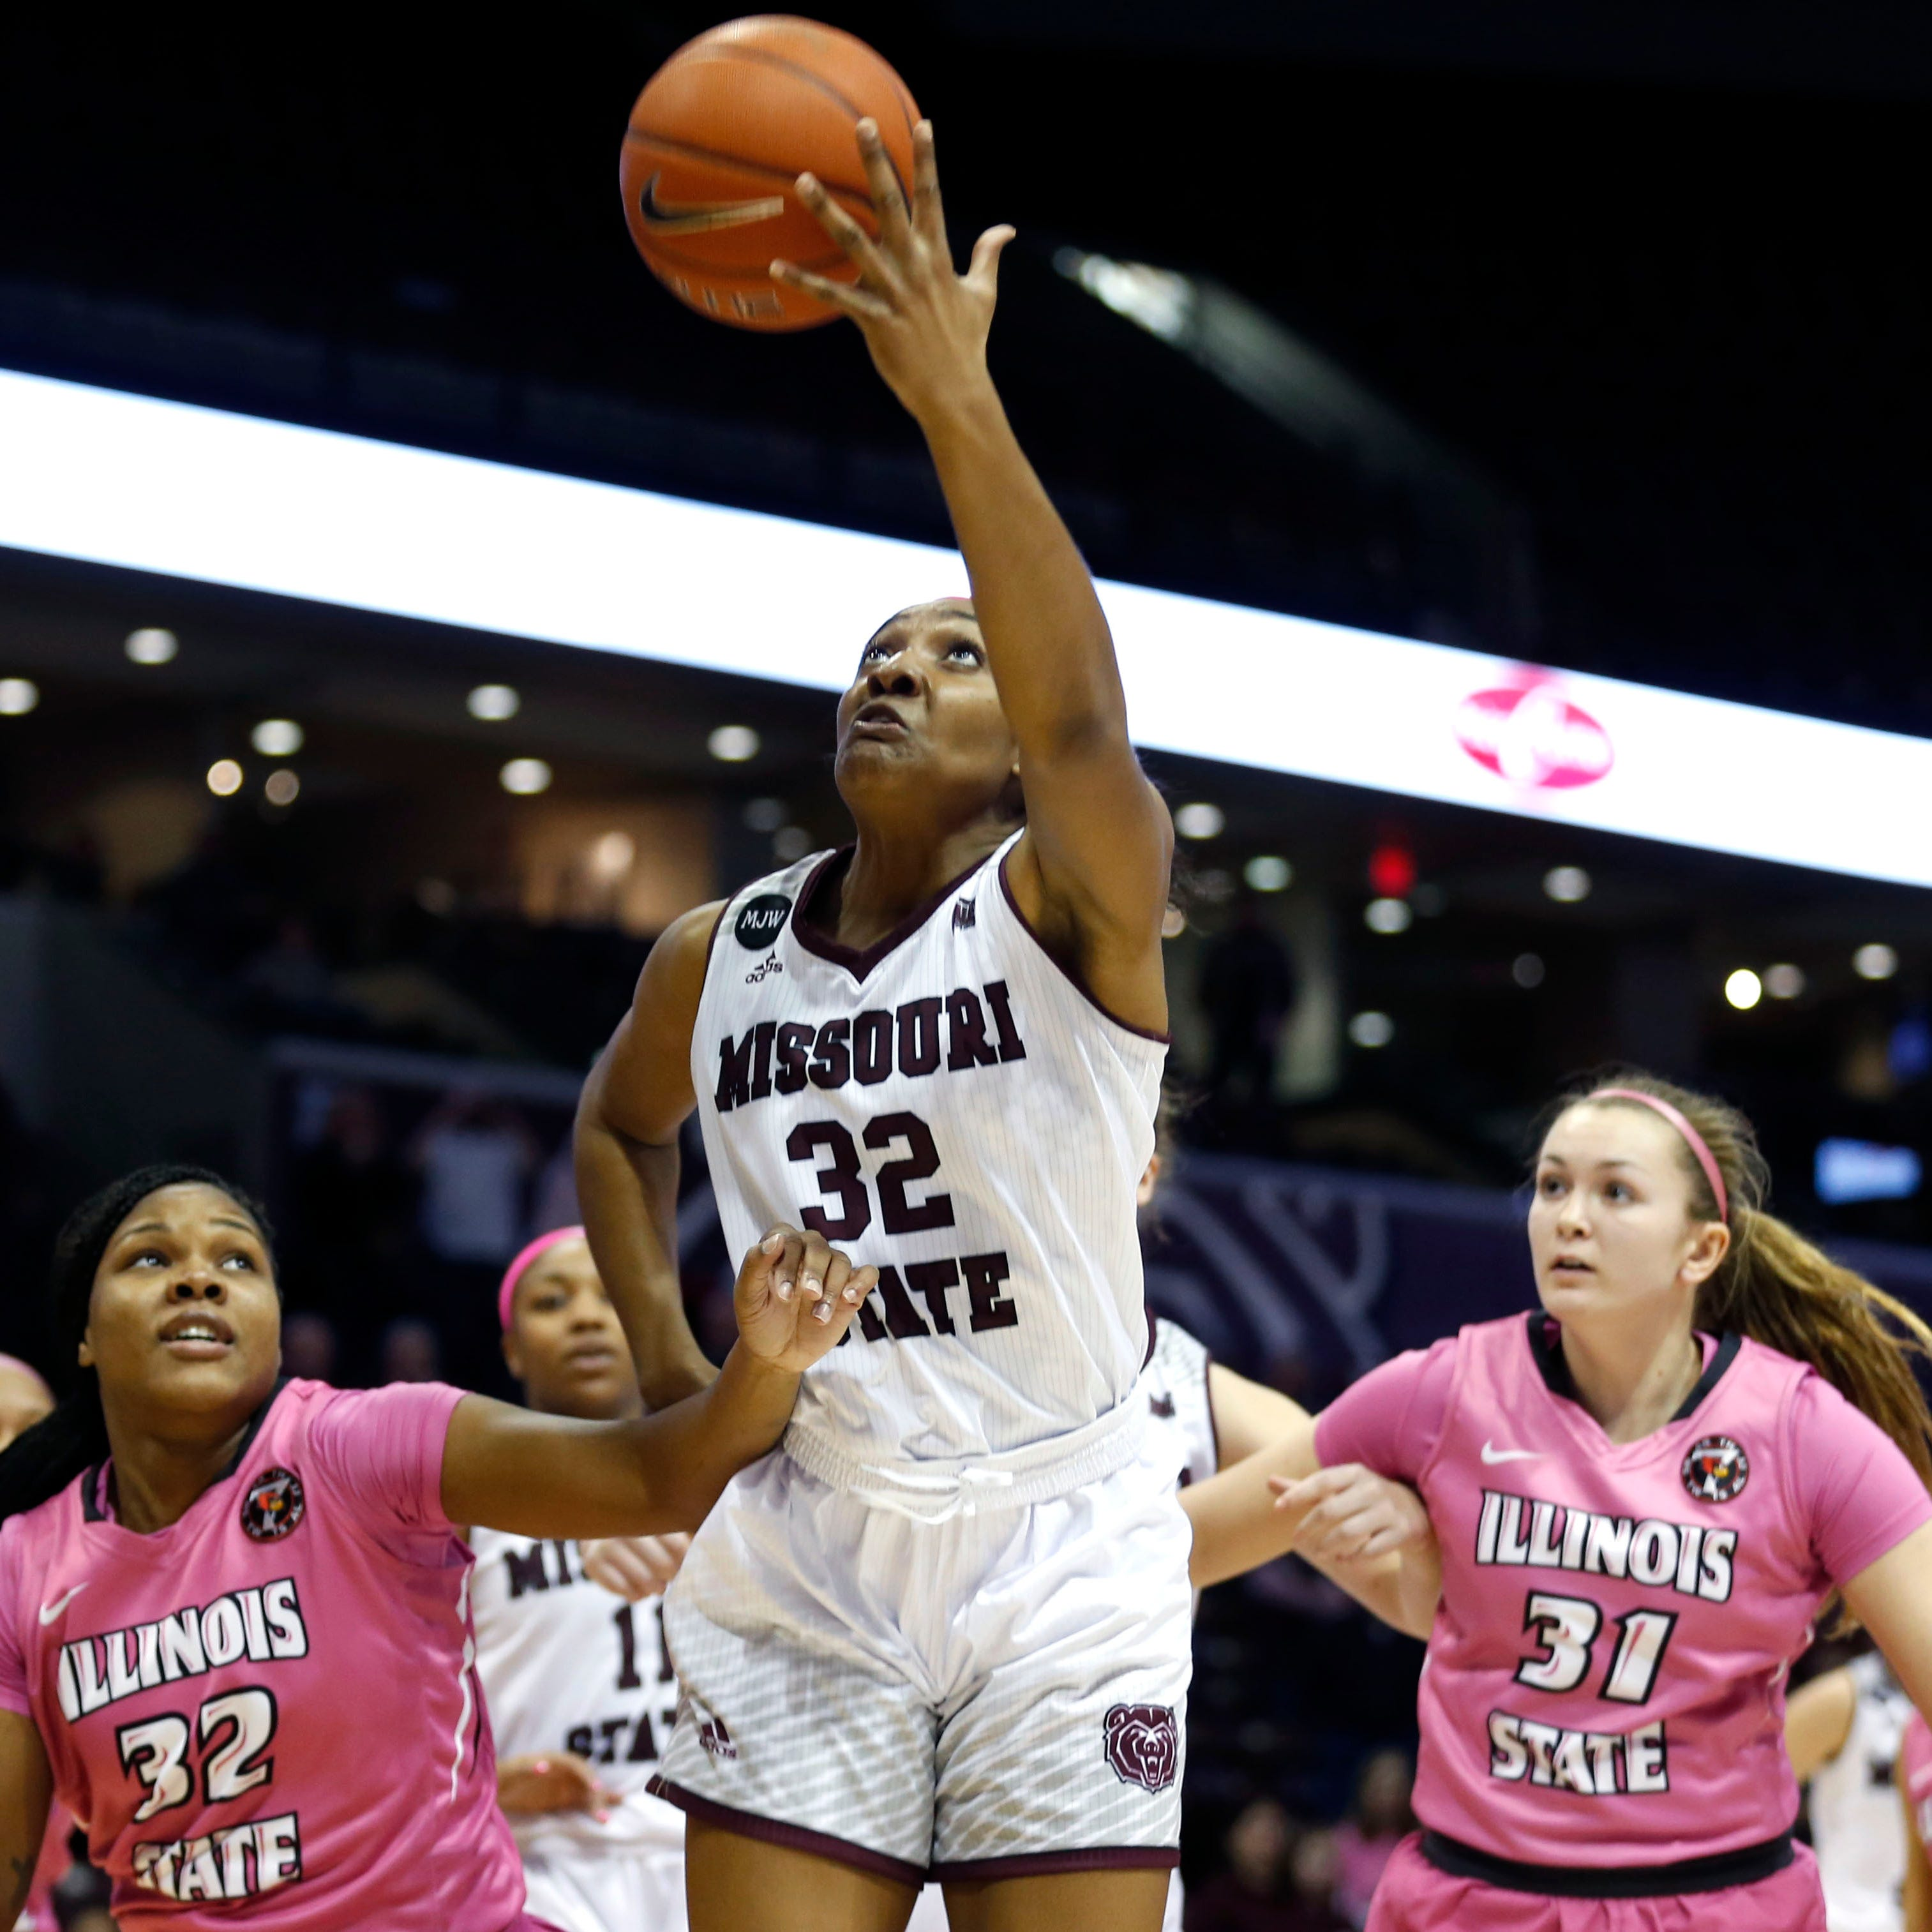 Lady Bears' streak ends with loss to Illinois State